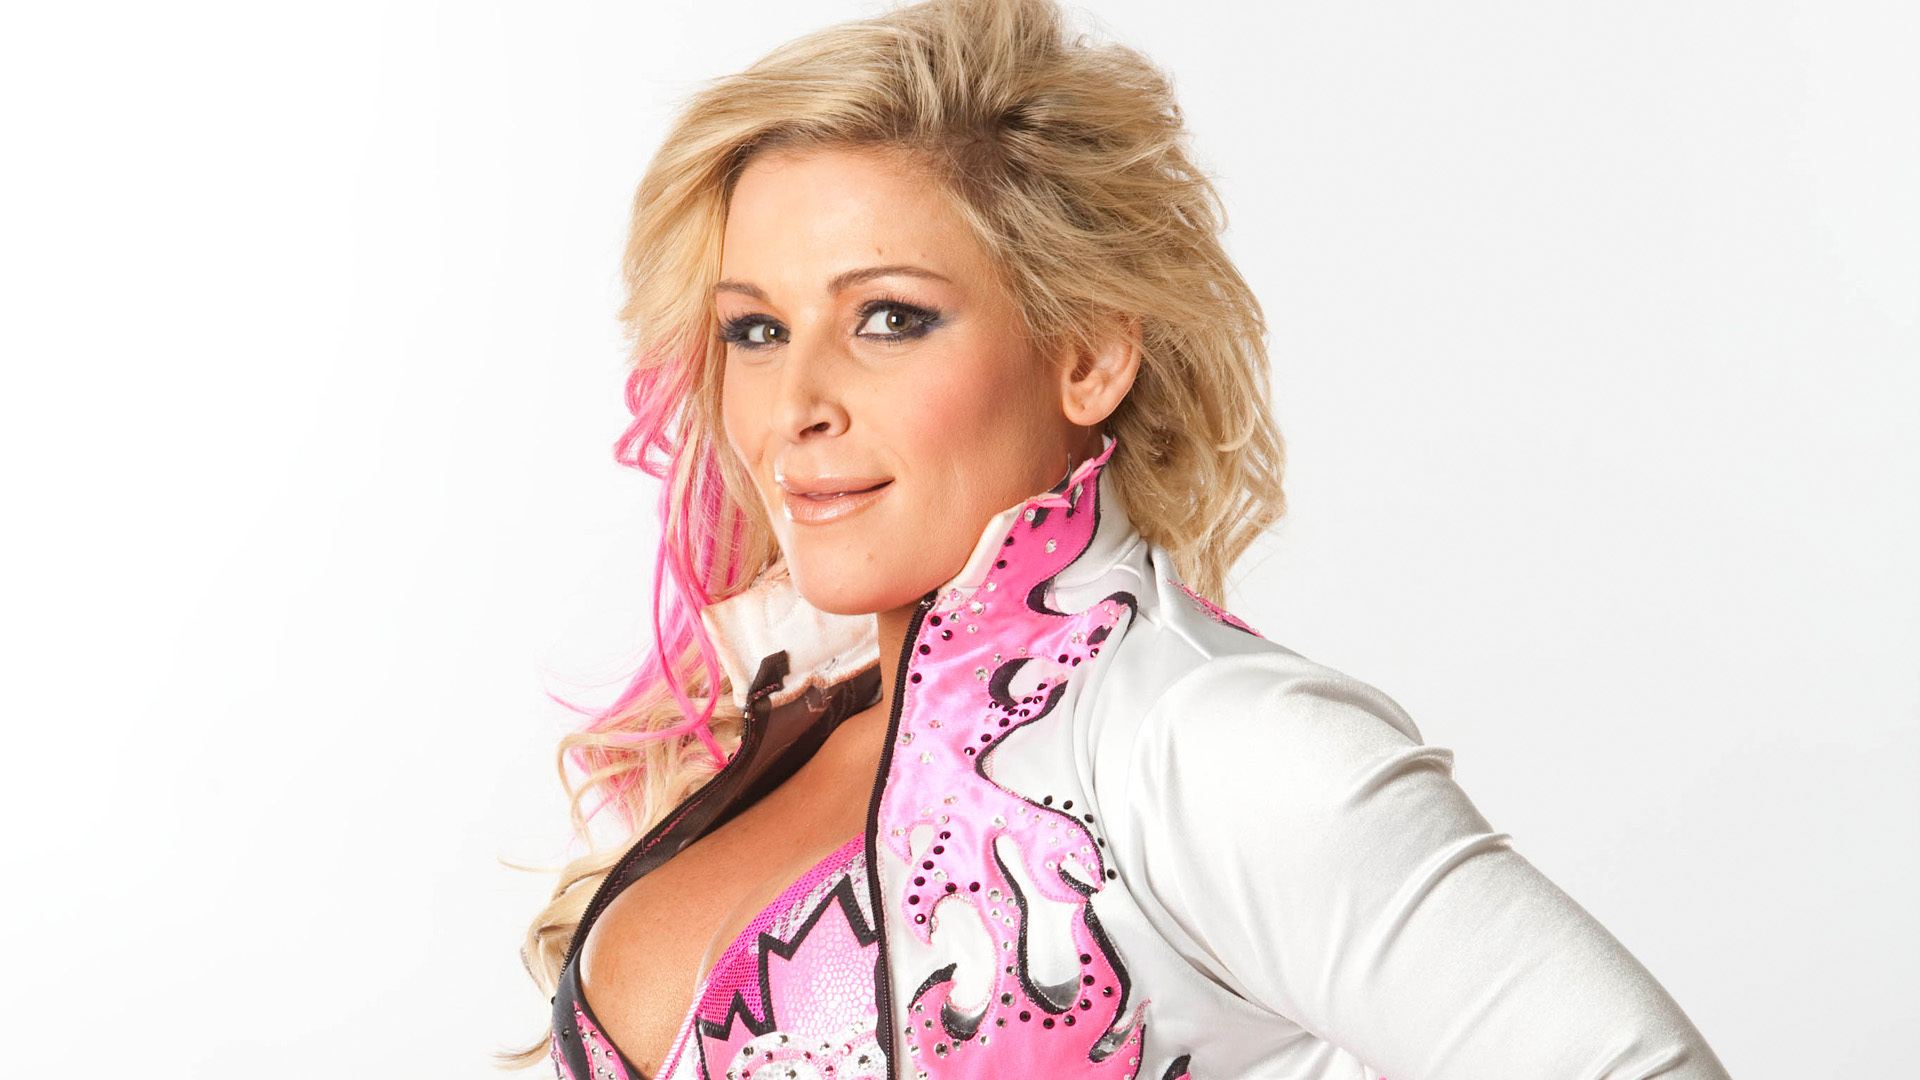 Natalya wwe divas 1920x1080 hd wallpaper natalya wwe divas 1920x1080 hd wallpapers for desktop voltagebd Images